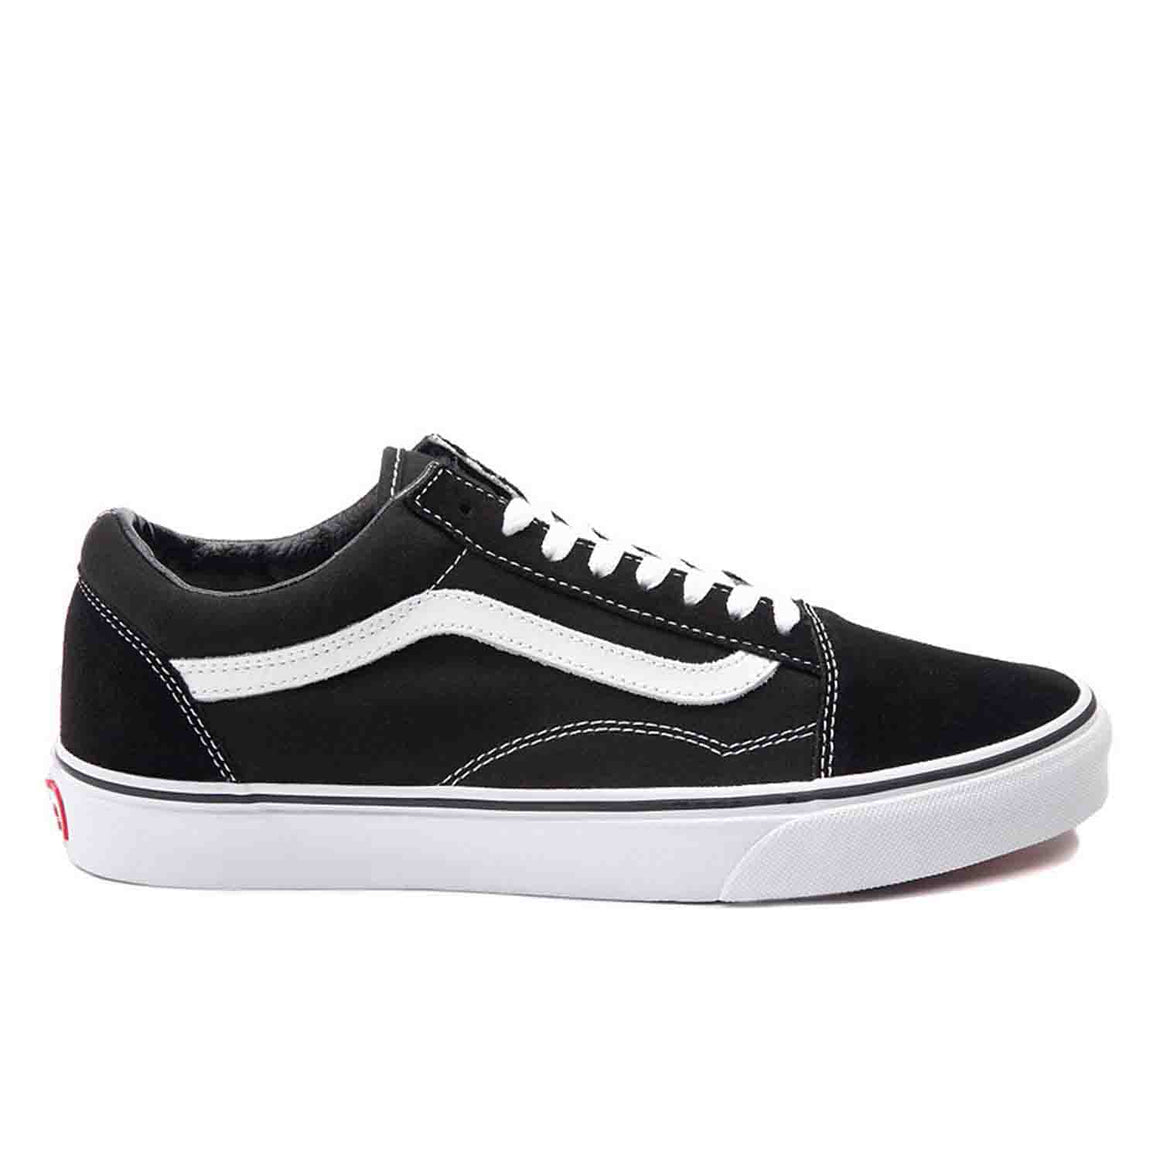 VANS OLD SKOOL BLACK / WHITE